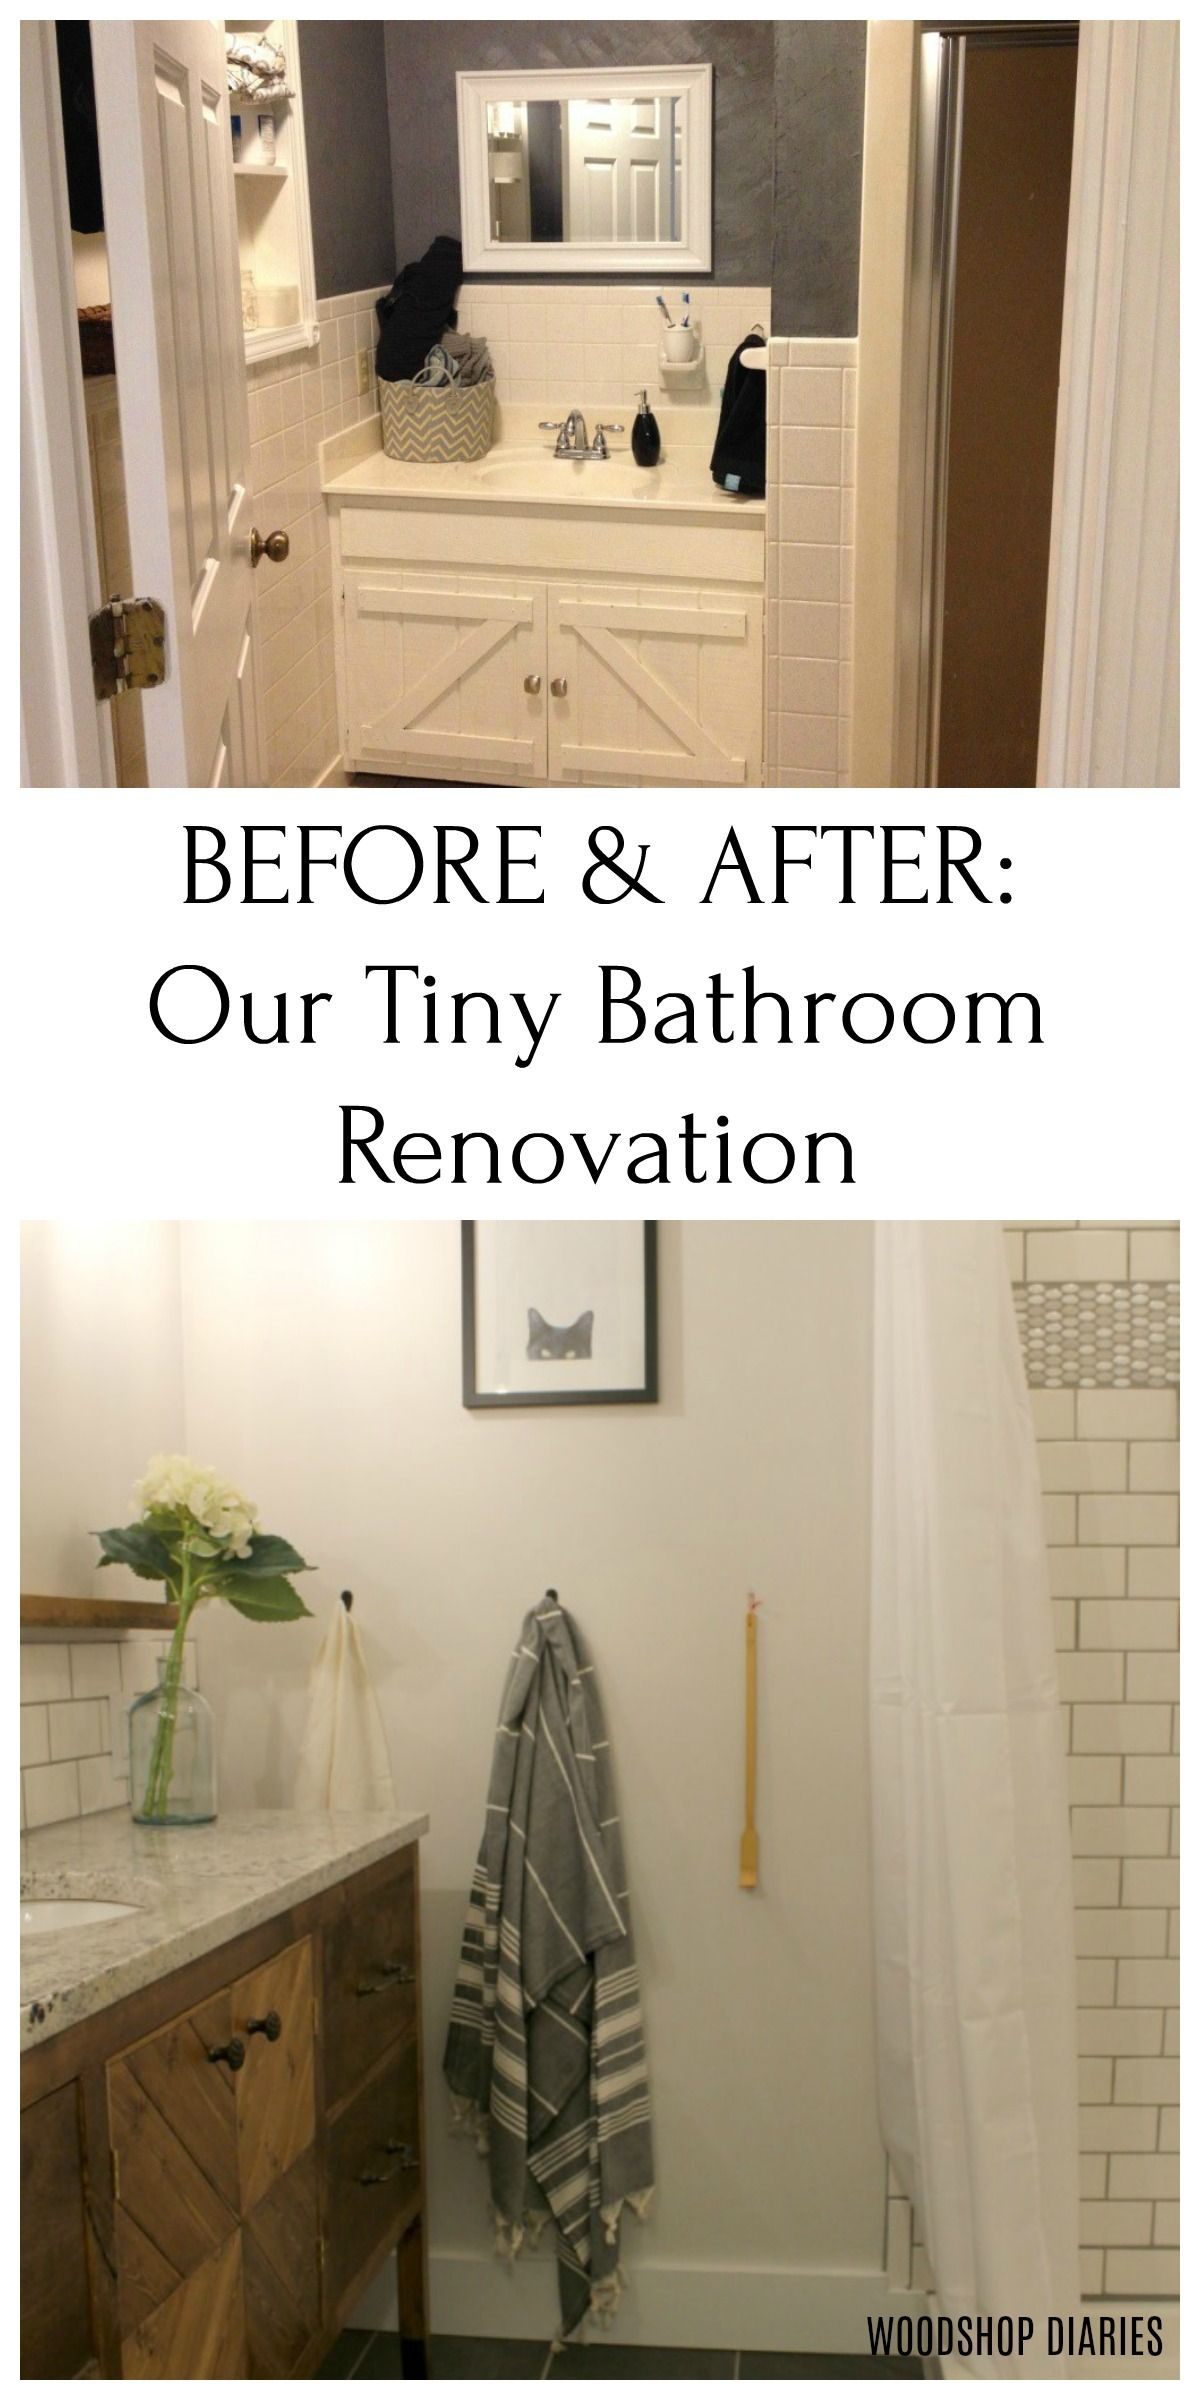 The Master Bathroom Remodel Final Reveal In 2020 Bathroom Remodel Master Bathrooms Remodel Bathroom Inspiration